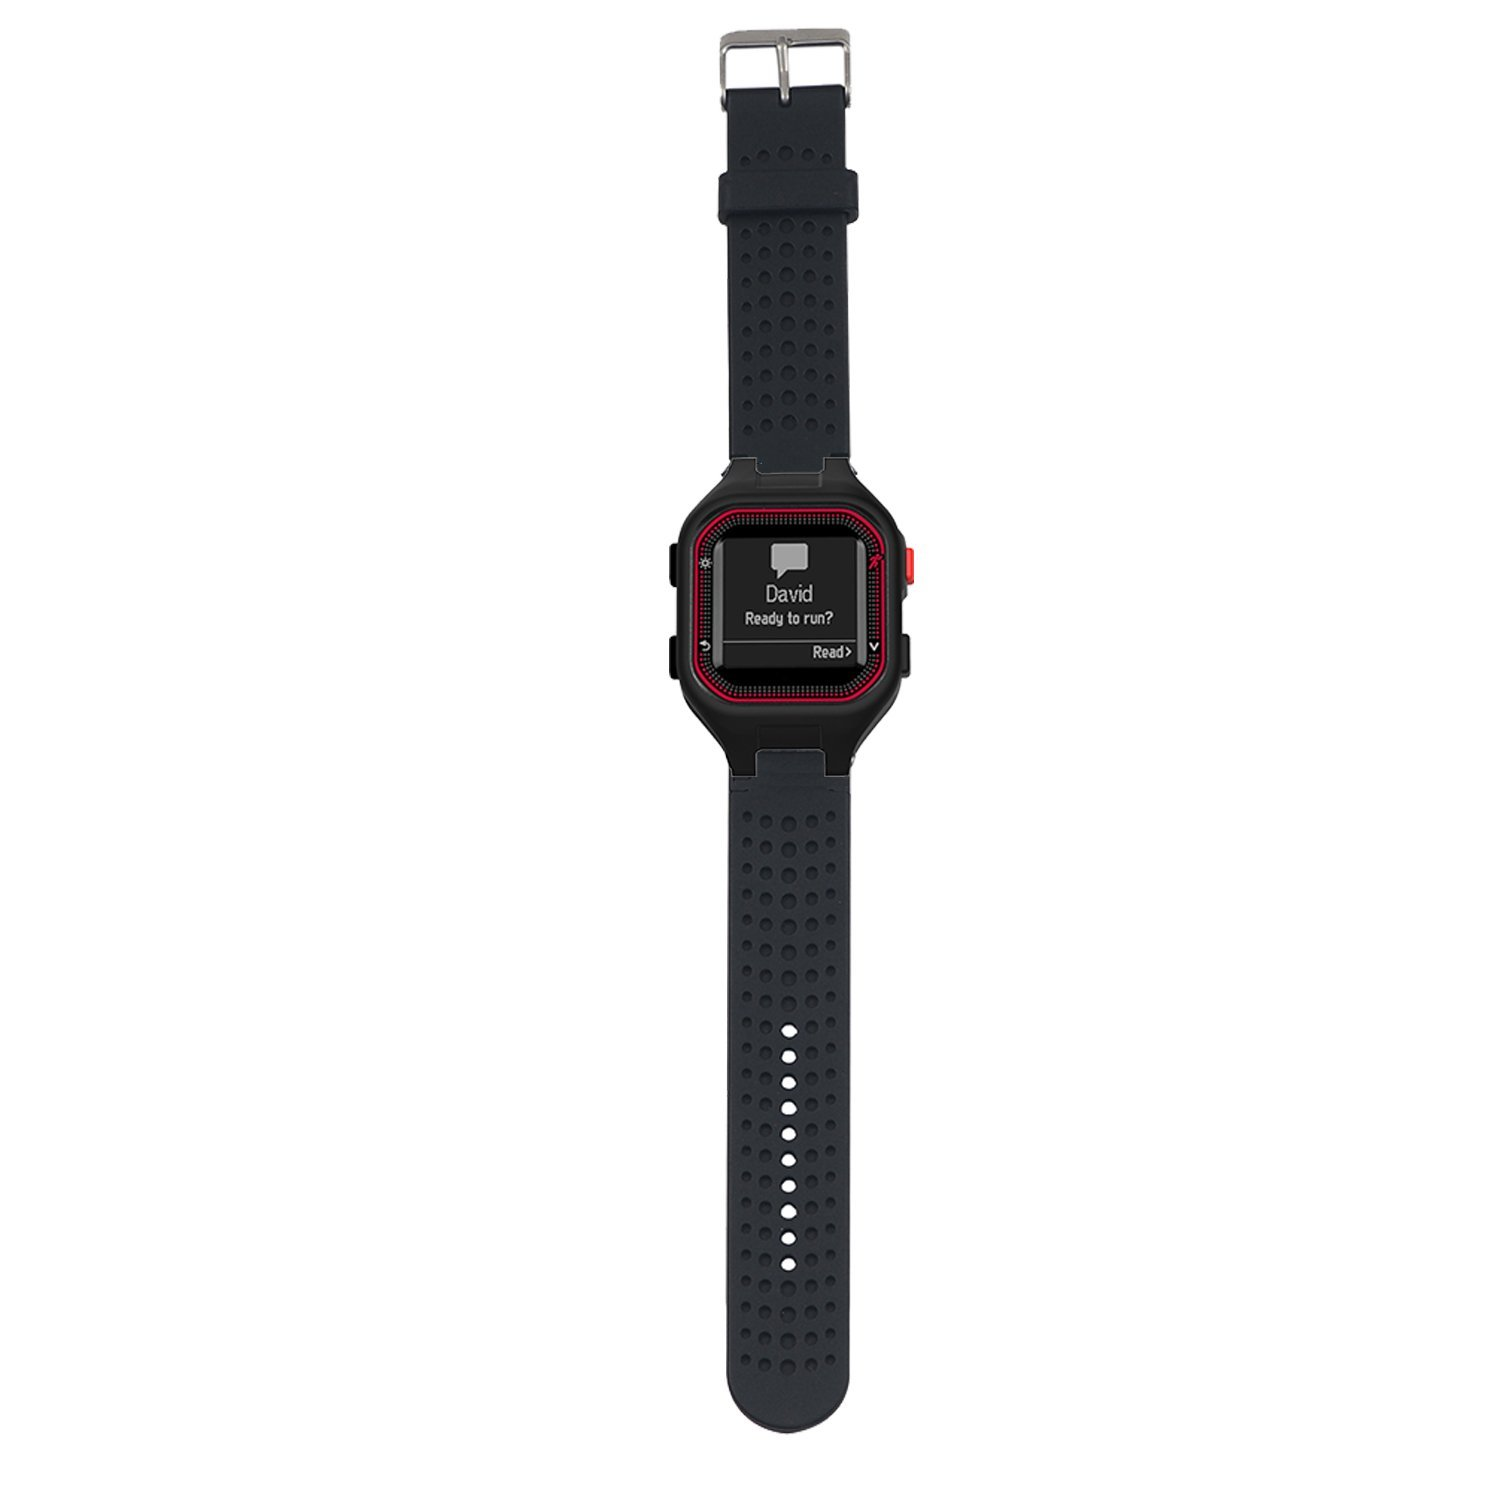 13bf71c831cec0 Amazon.com: Replacement Band for Garmin Forerunner 25 GPS Running Watch  Wristband Fitness Tracker for Smarwatch(Mans Strap) (Black): Cell Phones &  ...